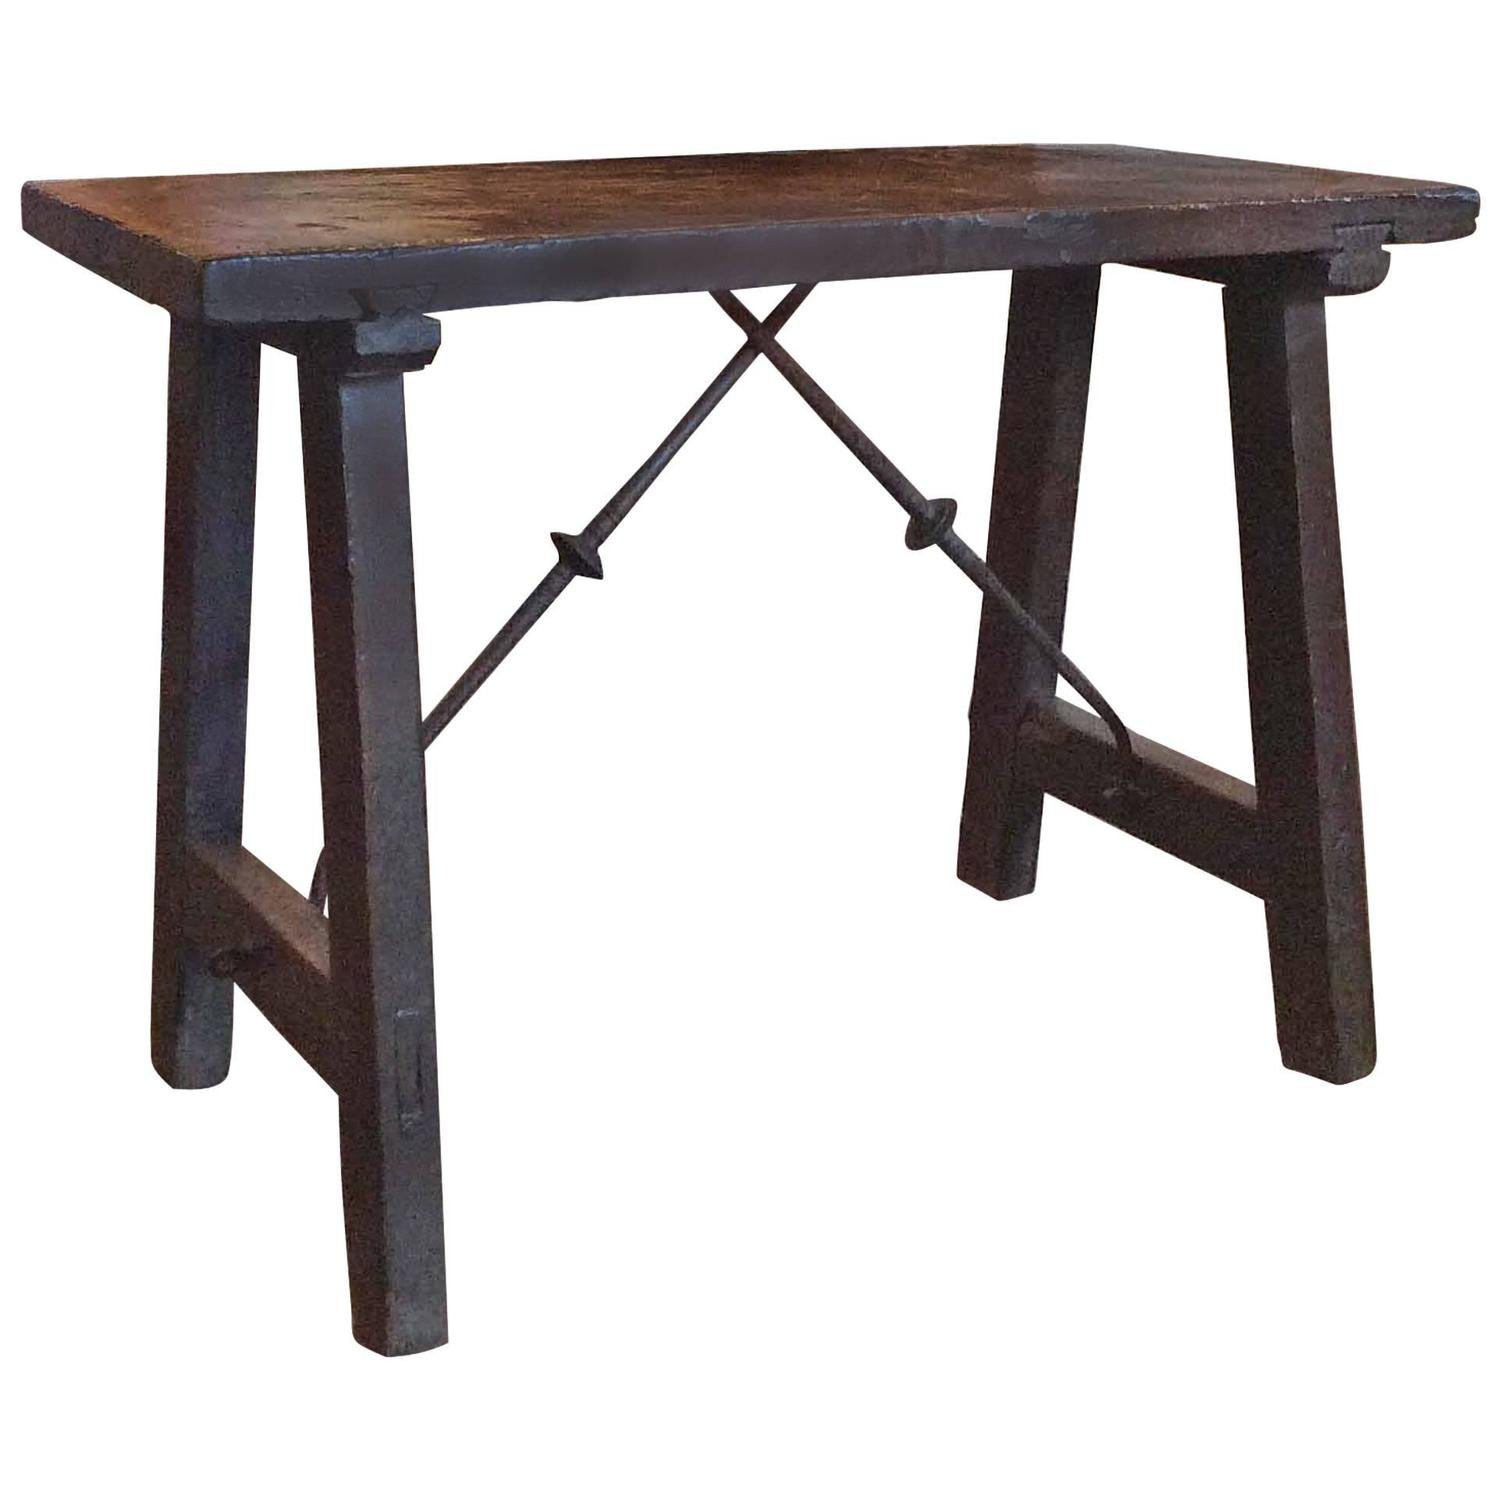 Spanish antique side table at 1stdibs for Table in spanish